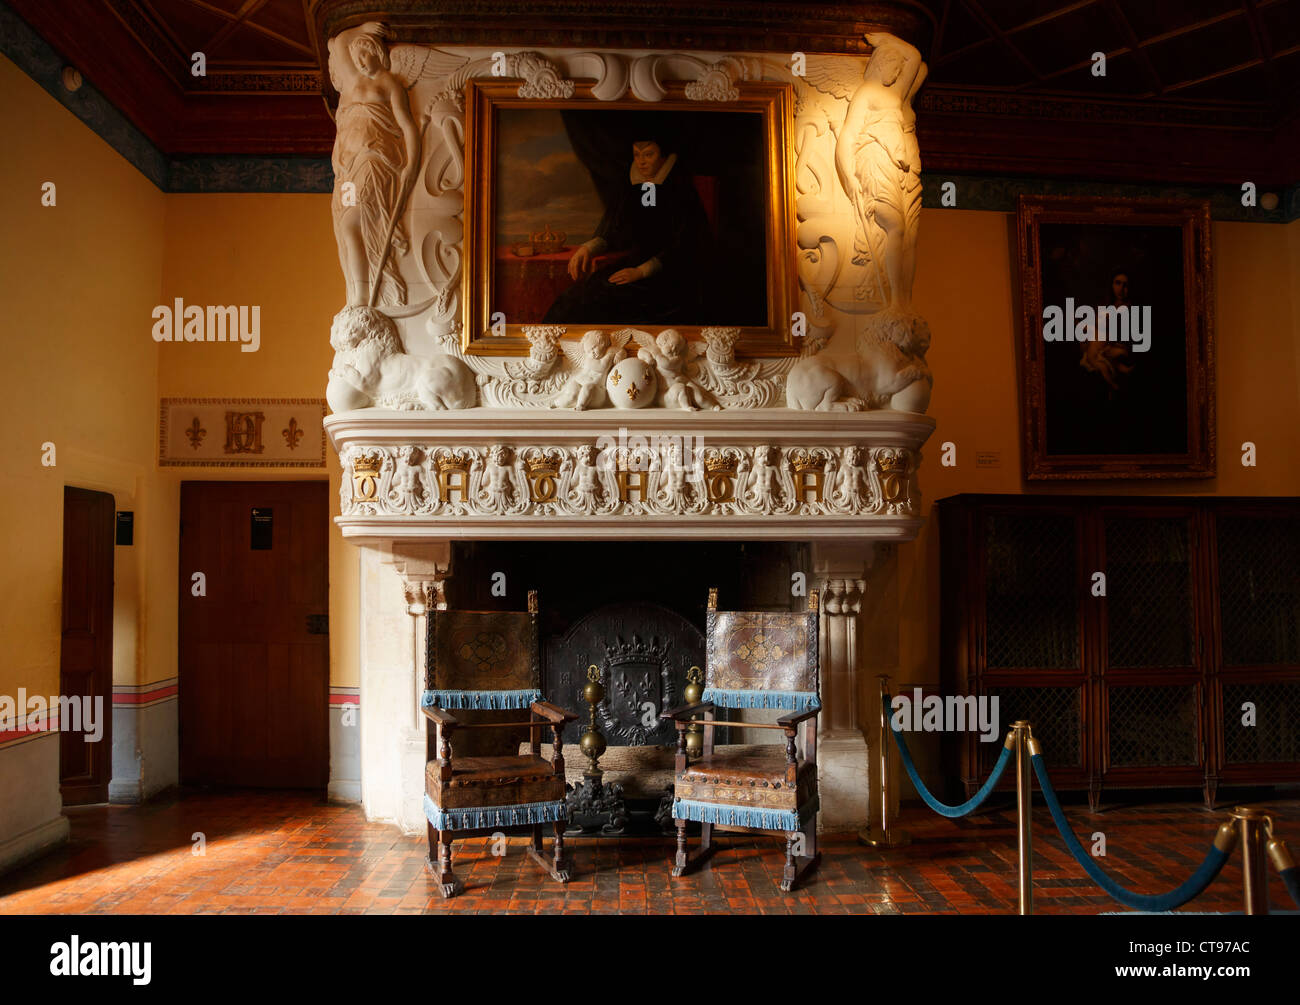 Diane de Poitiers Bedroom, Chateau Chenonceau, France. Fireplace by ...